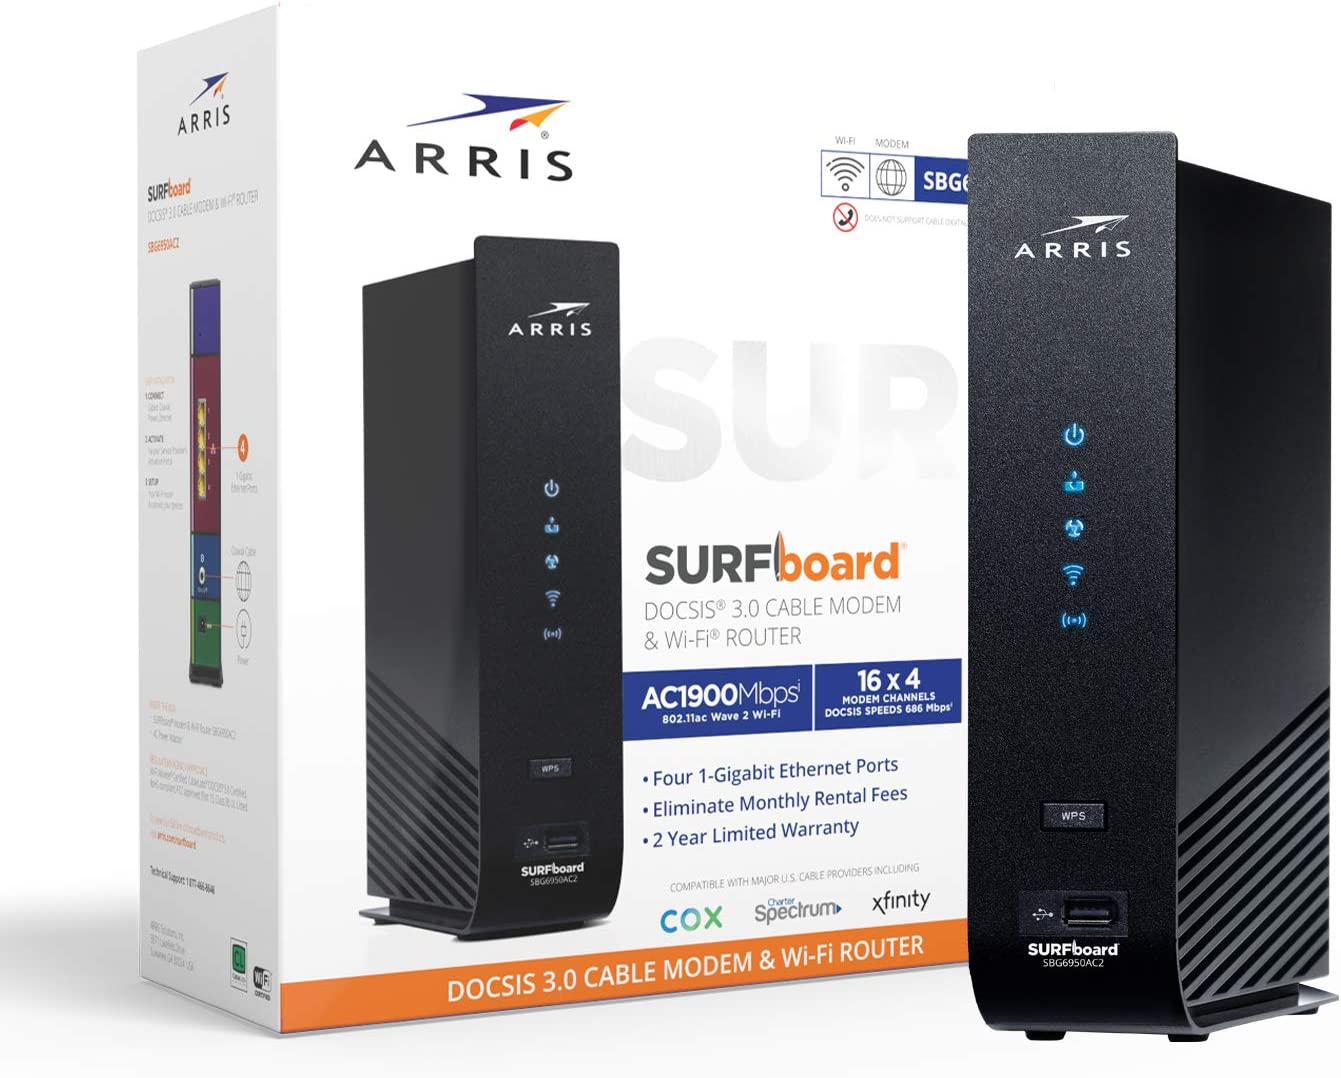 Arris Surfboard (16x4) Docsis 3.0 Cable Modem Plus AC1900 Dual Band Wi-Fi Router, Black & Roku Premiere | HD/4K/HDR Streaming Media Player, Simple Remote and Premium HDMI Cable